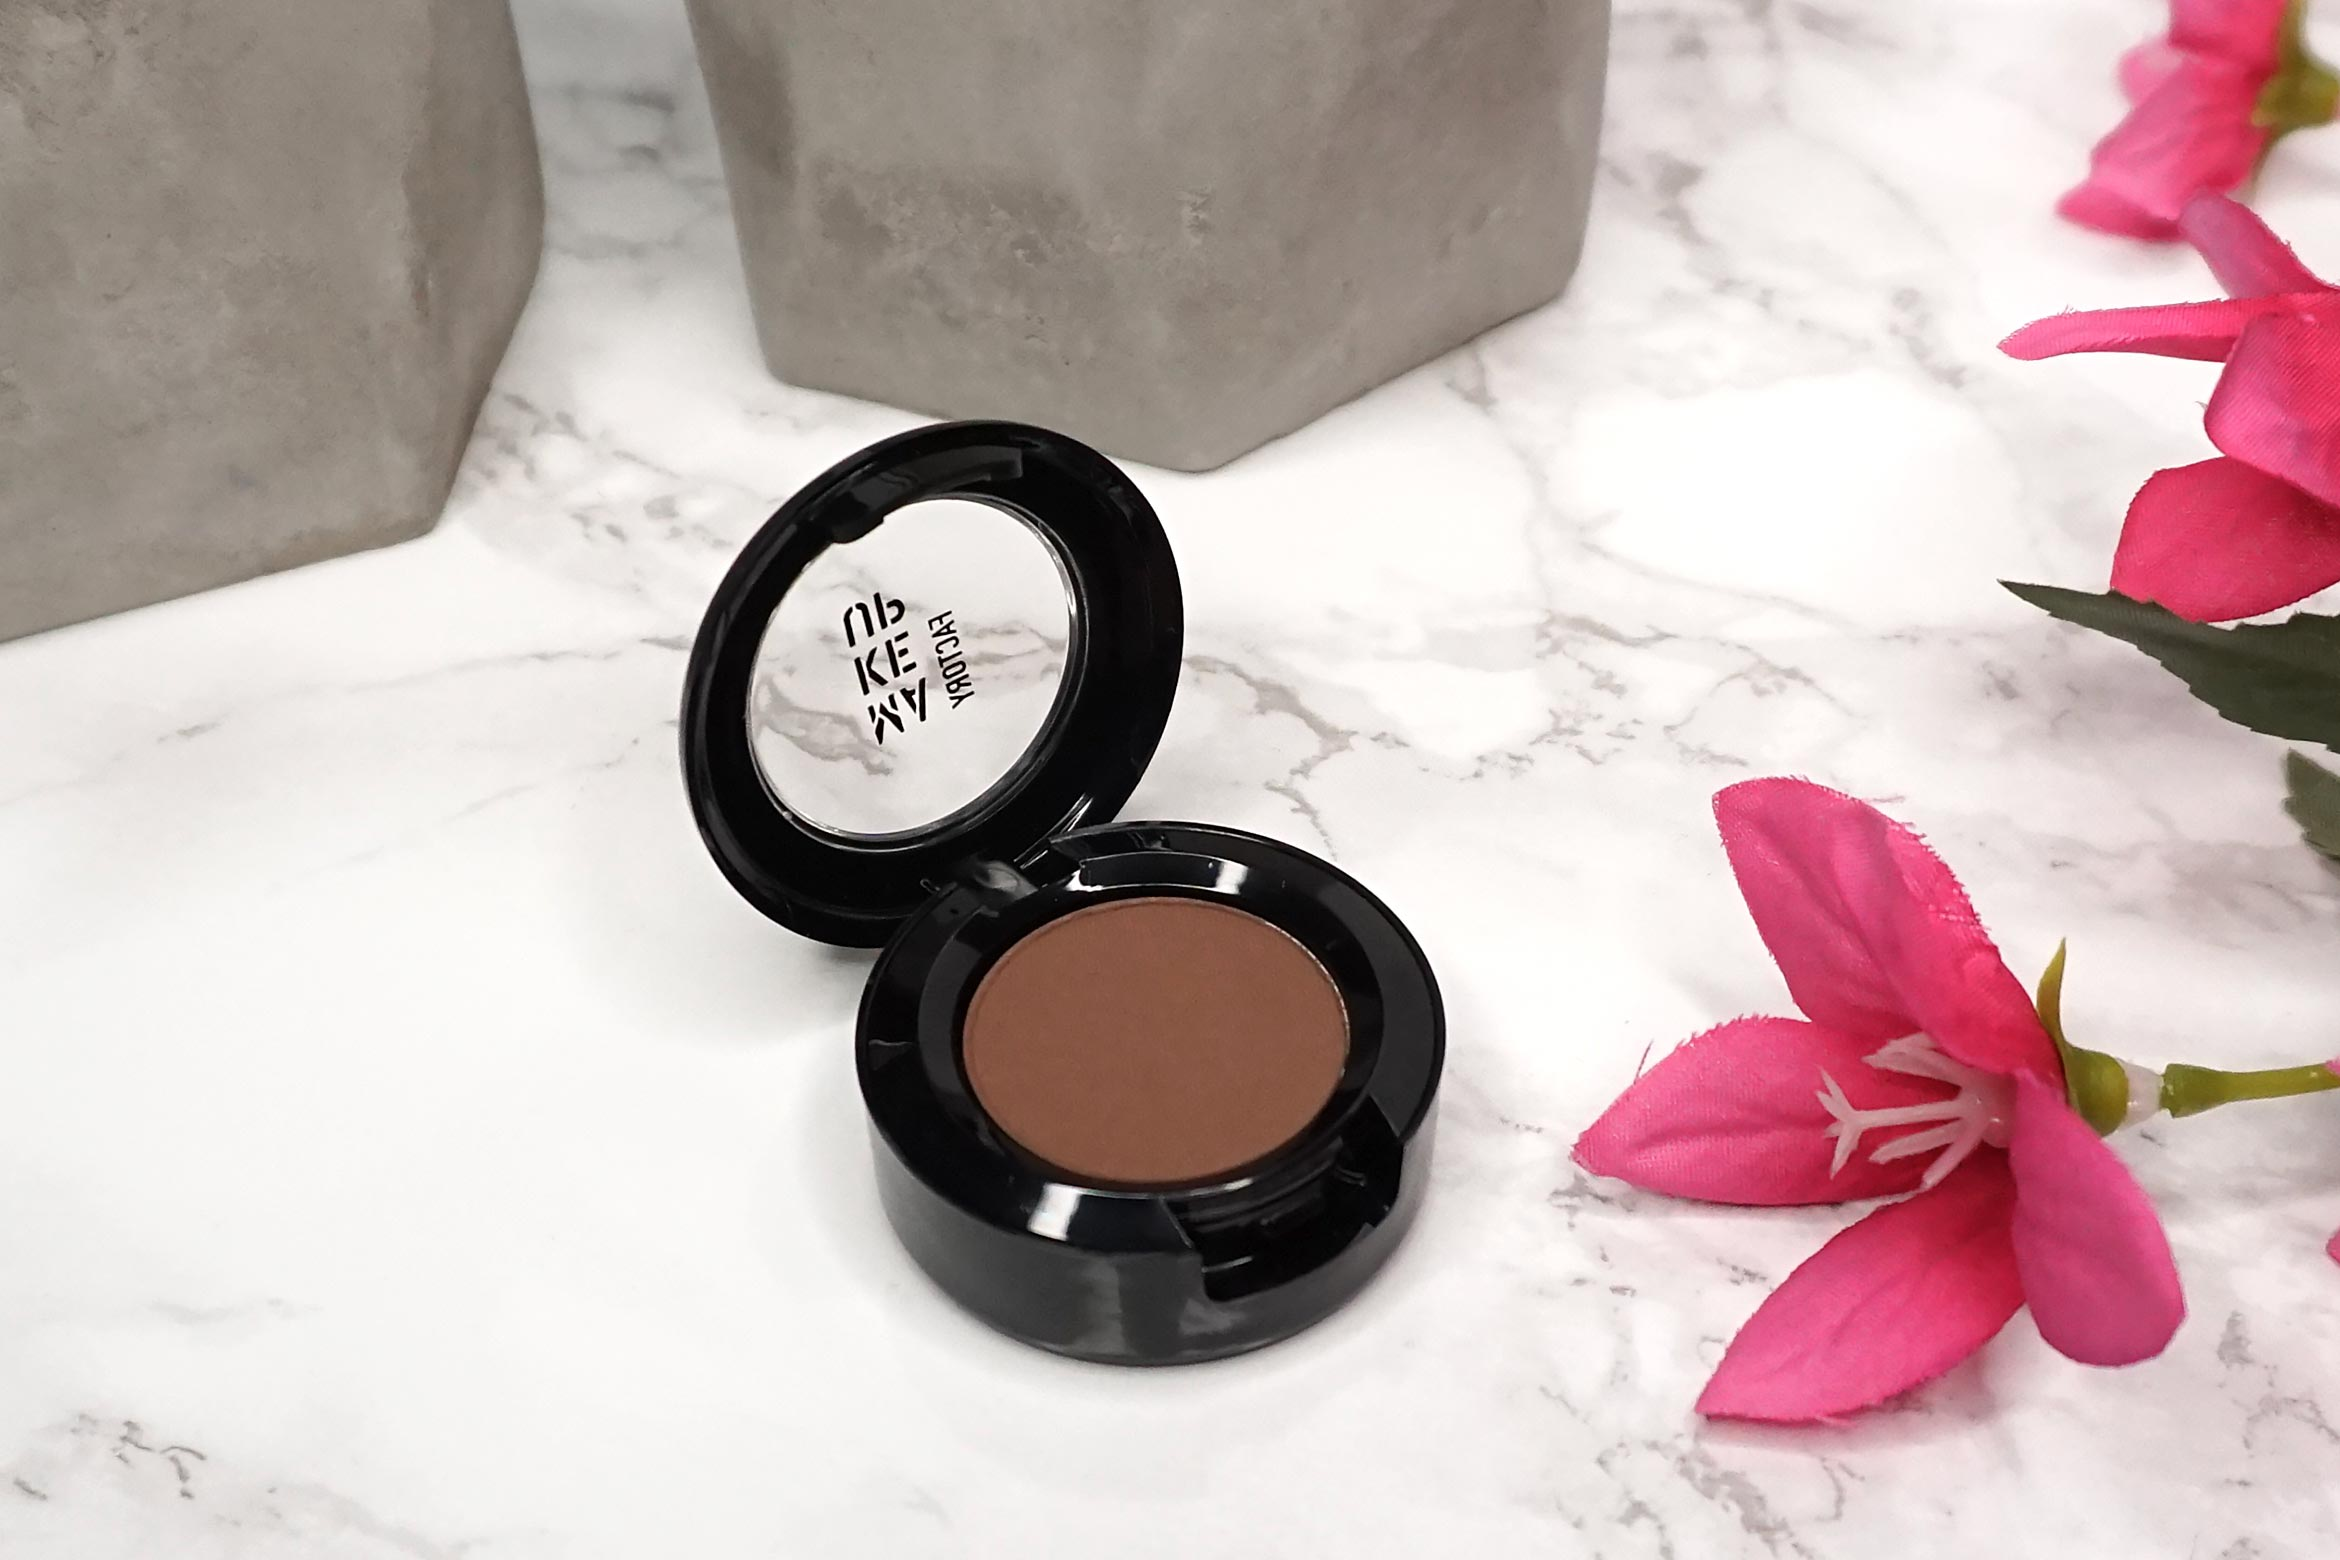 vmake-up-factory-eye-brow-powder-review